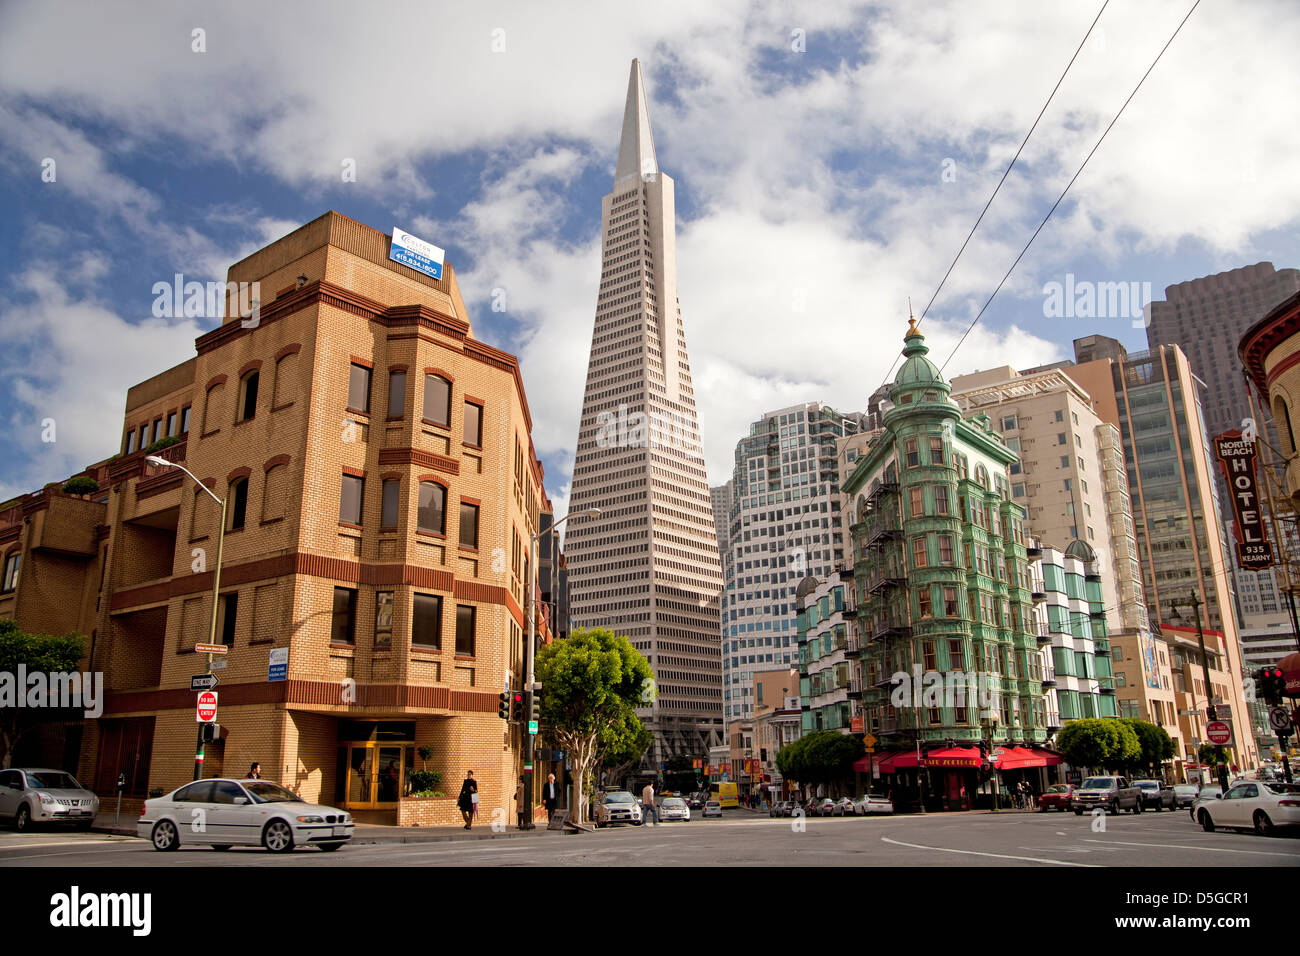 Transamerica Pyramid, historic Sentinel Building with Cafe Zoetrope and Columbus Avenue in San Francisco, California, - Stock Image